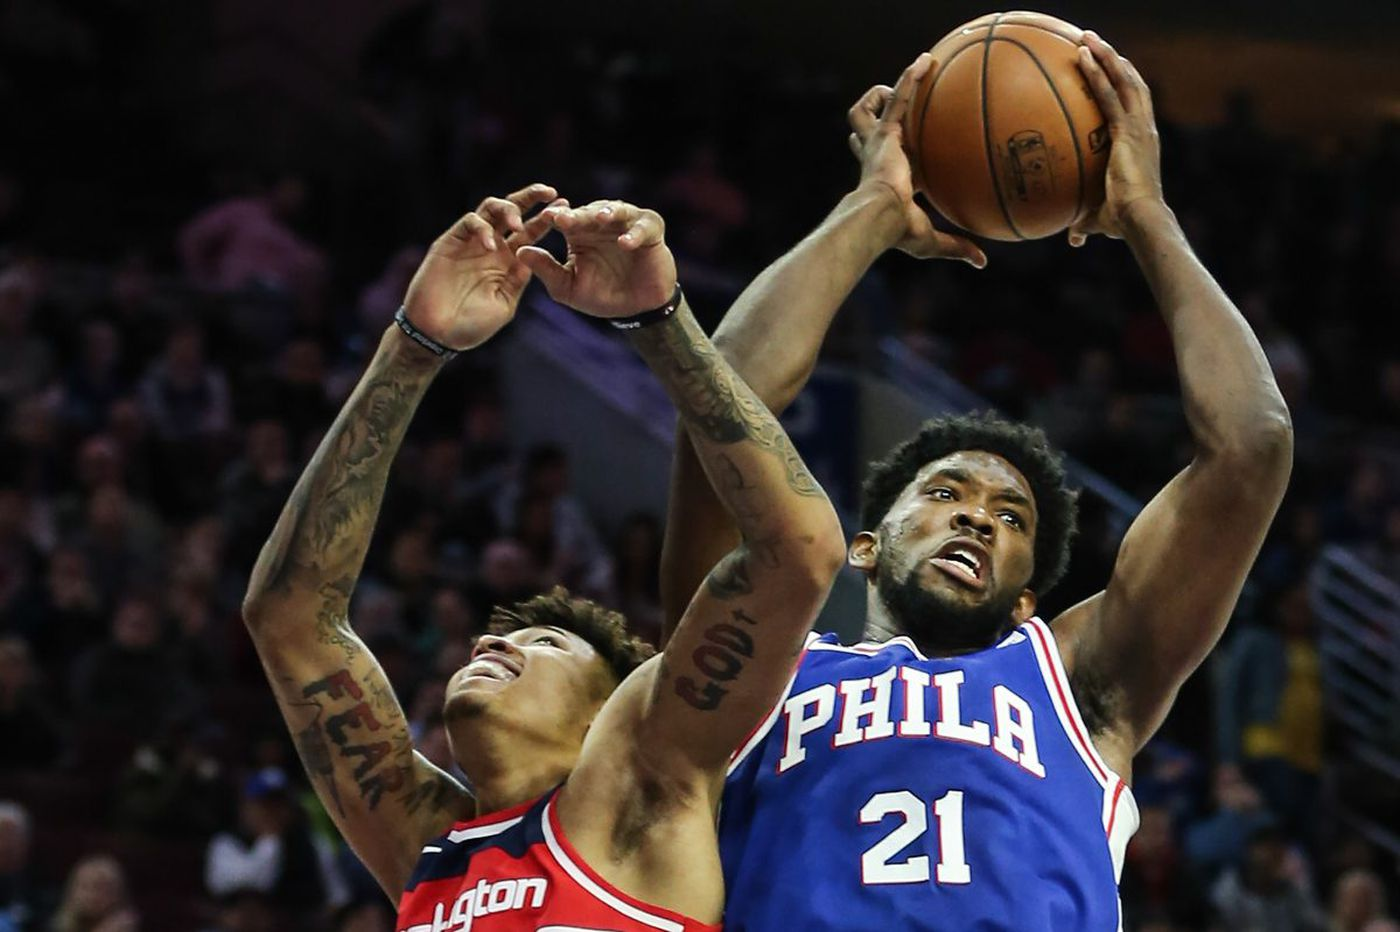 Sixers' Joel Embiid sidelined with back tightness